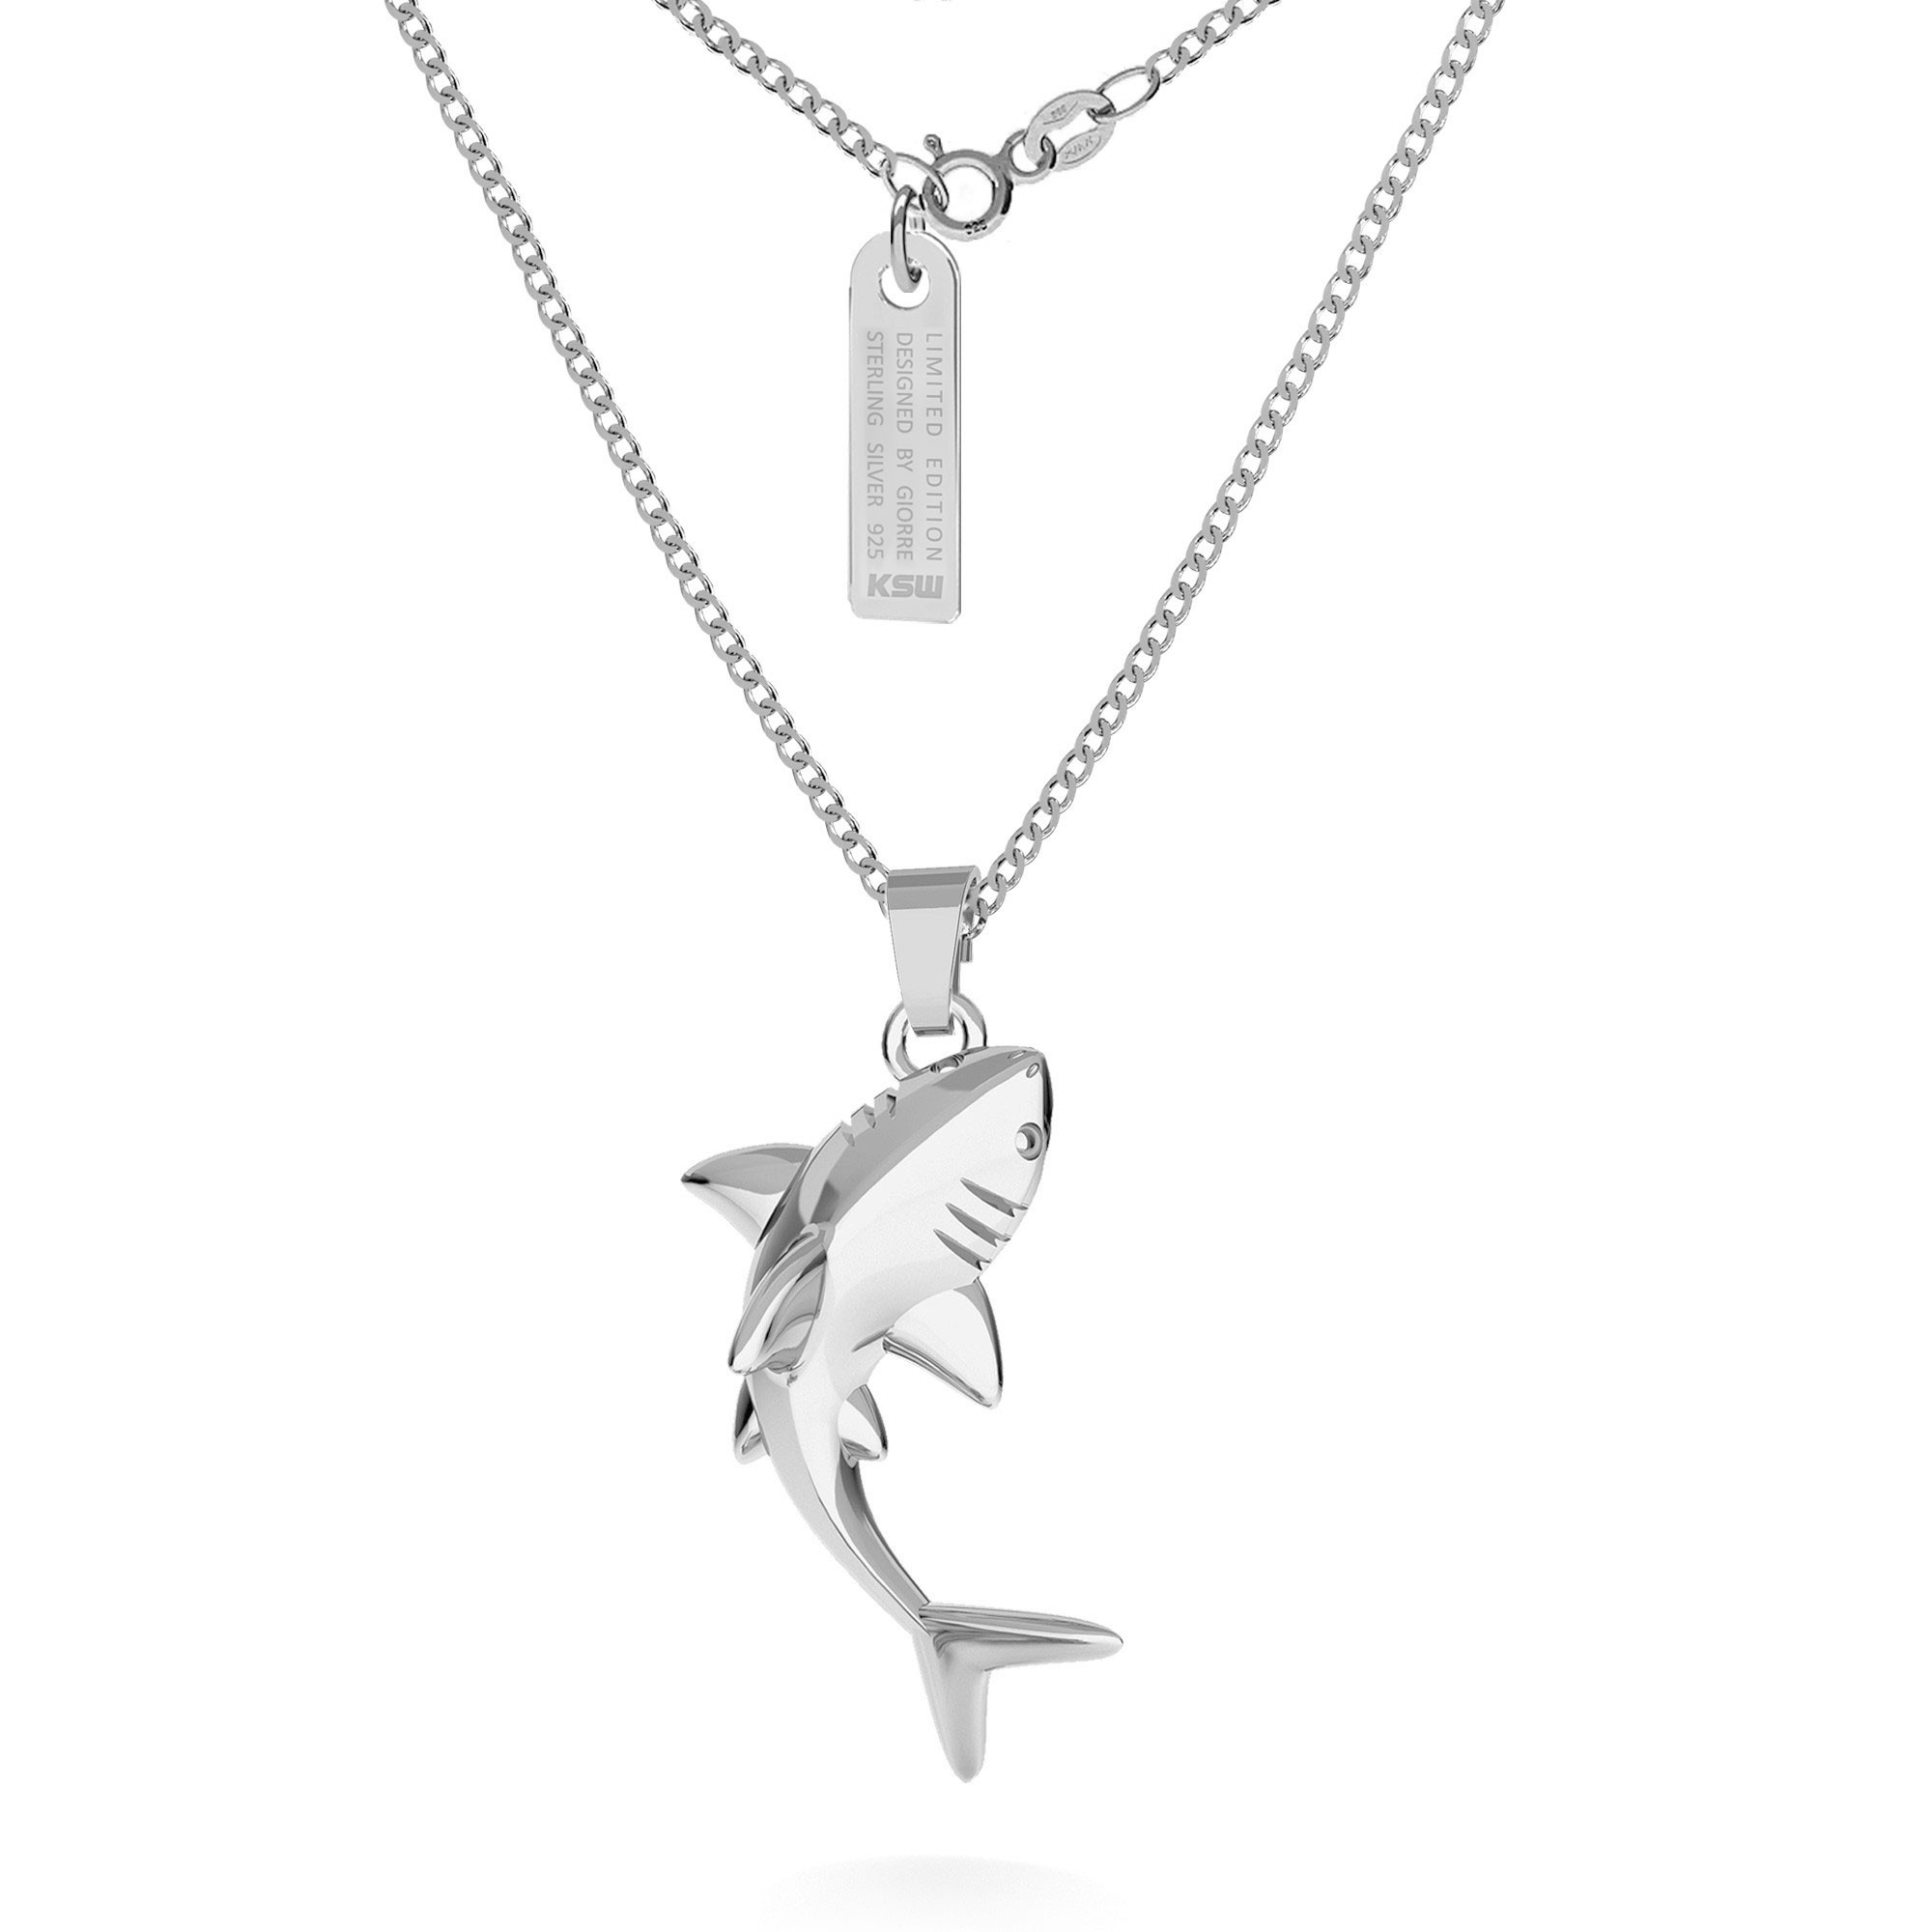 Shark necklace, curb chain, silver 925